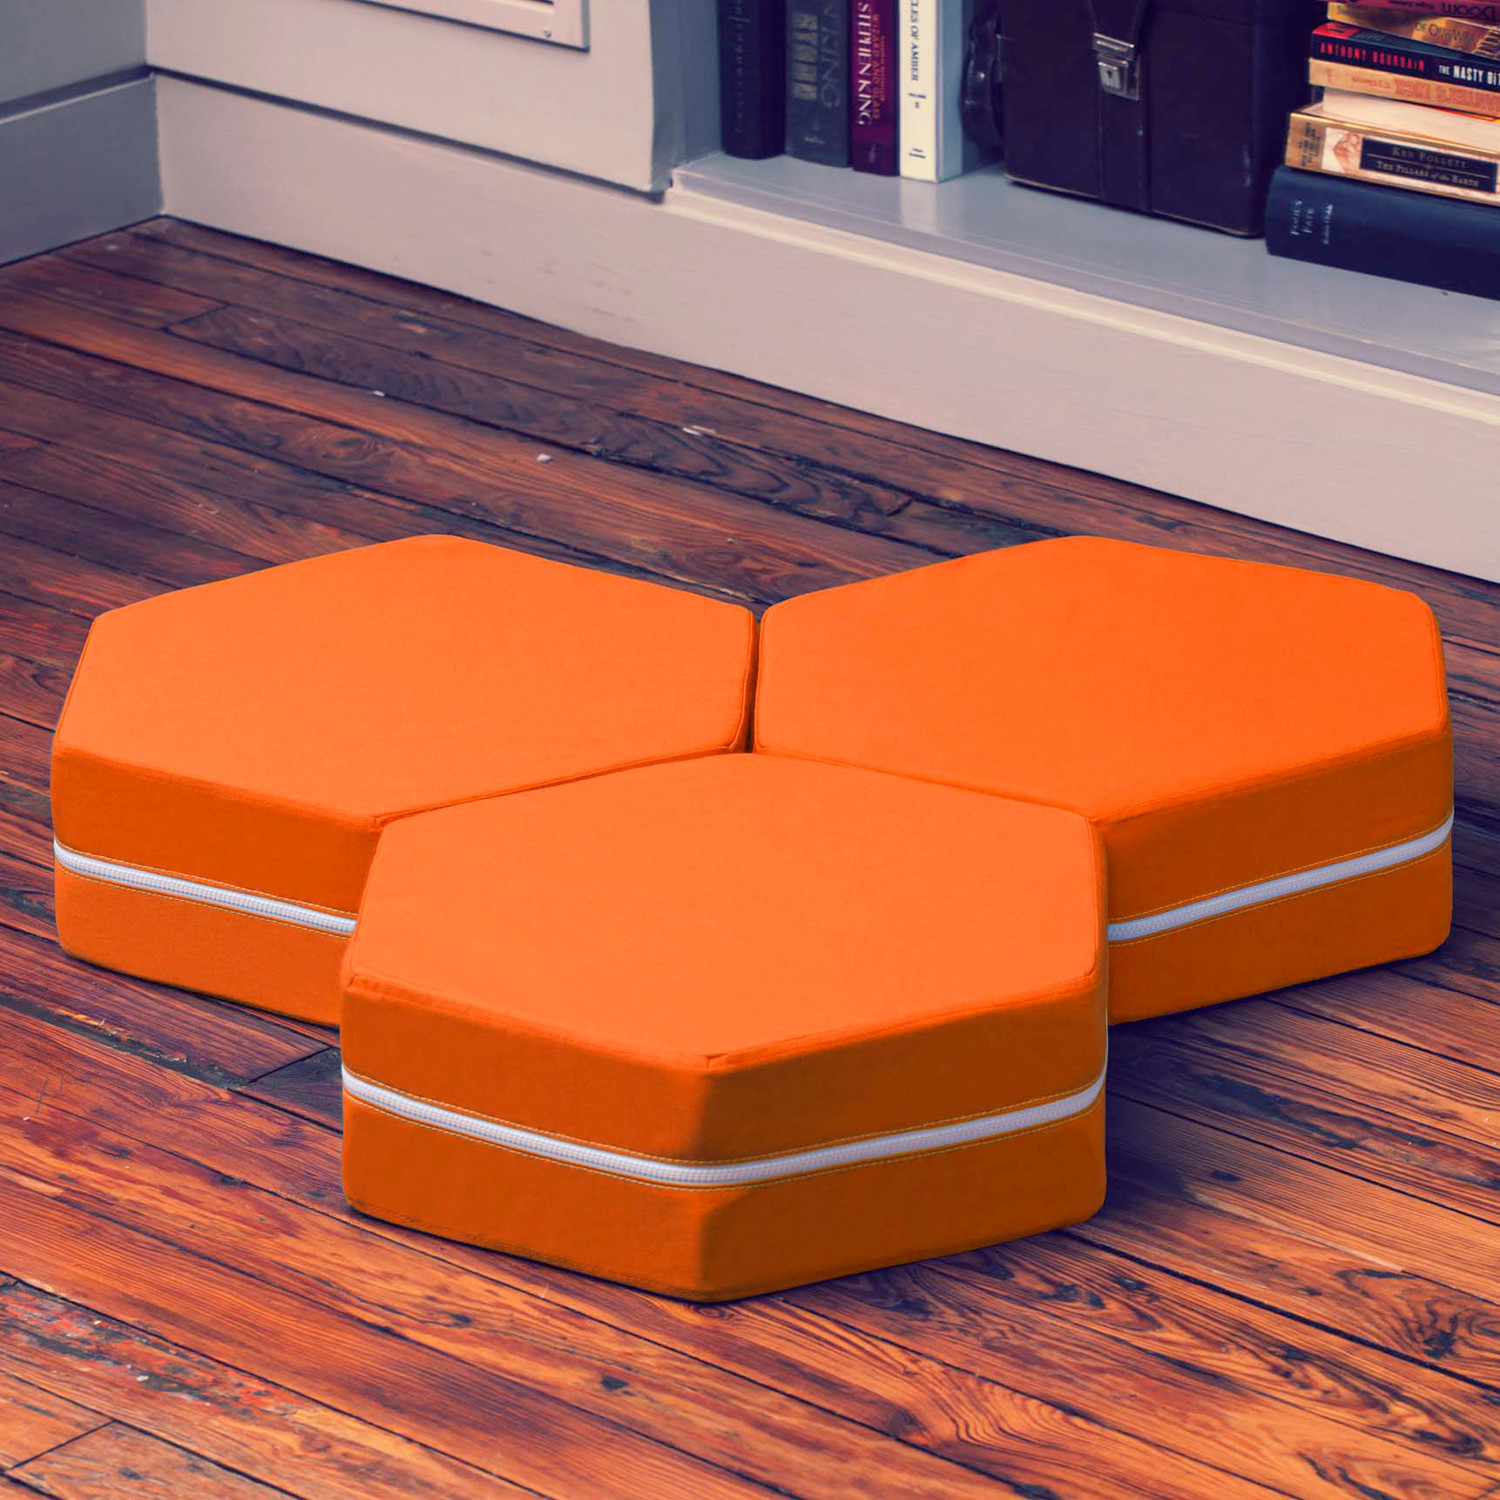 Jaxx Floor Pillows : Edgewood Hexagonal Stackable Floor Pillow // Set of 3 (Orange) - Jaxx Indoor - Touch of Modern